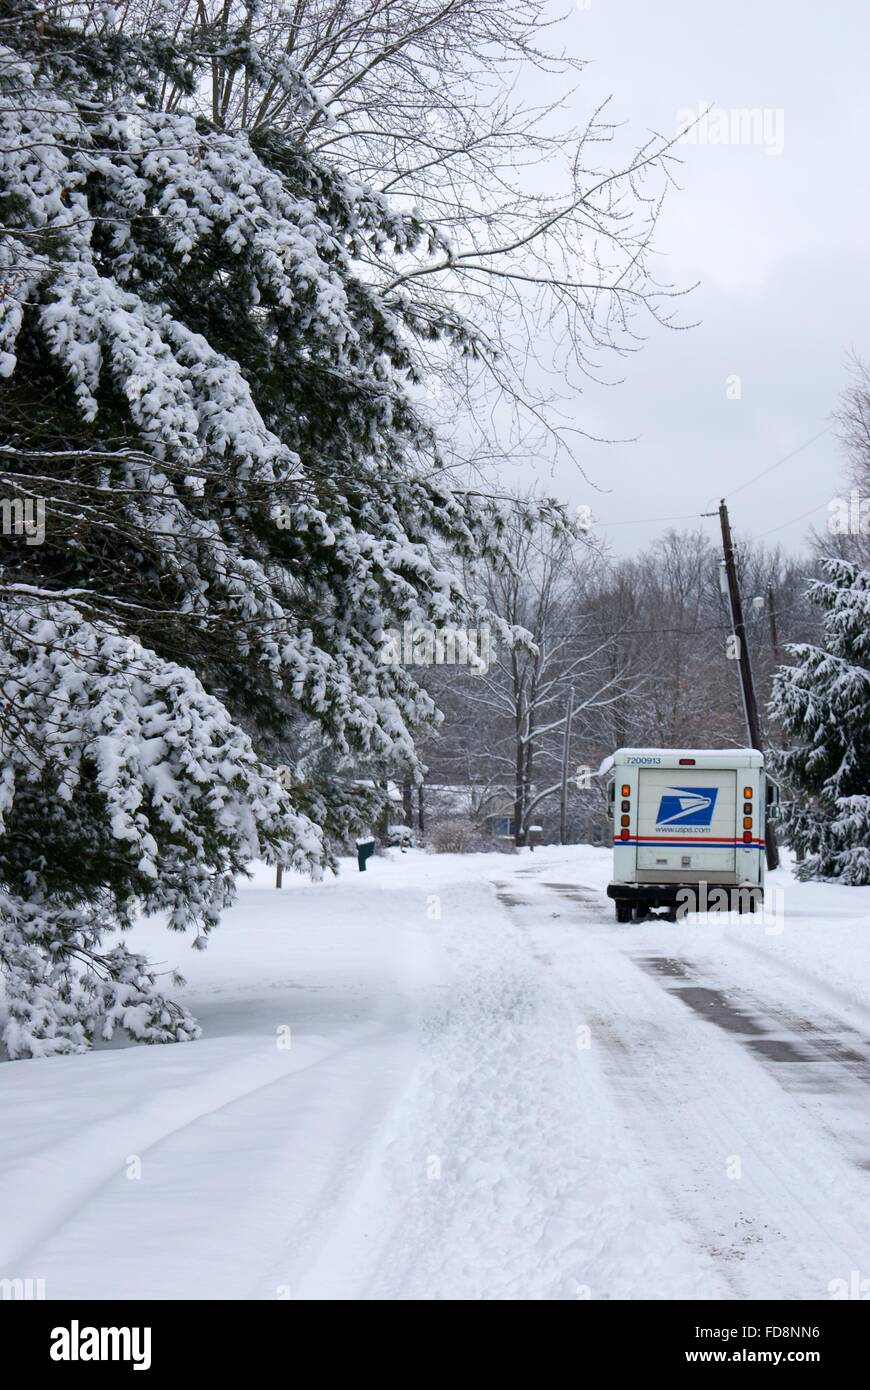 A postal truck delivering mail in a neighborhood in the snow. Stock Photo